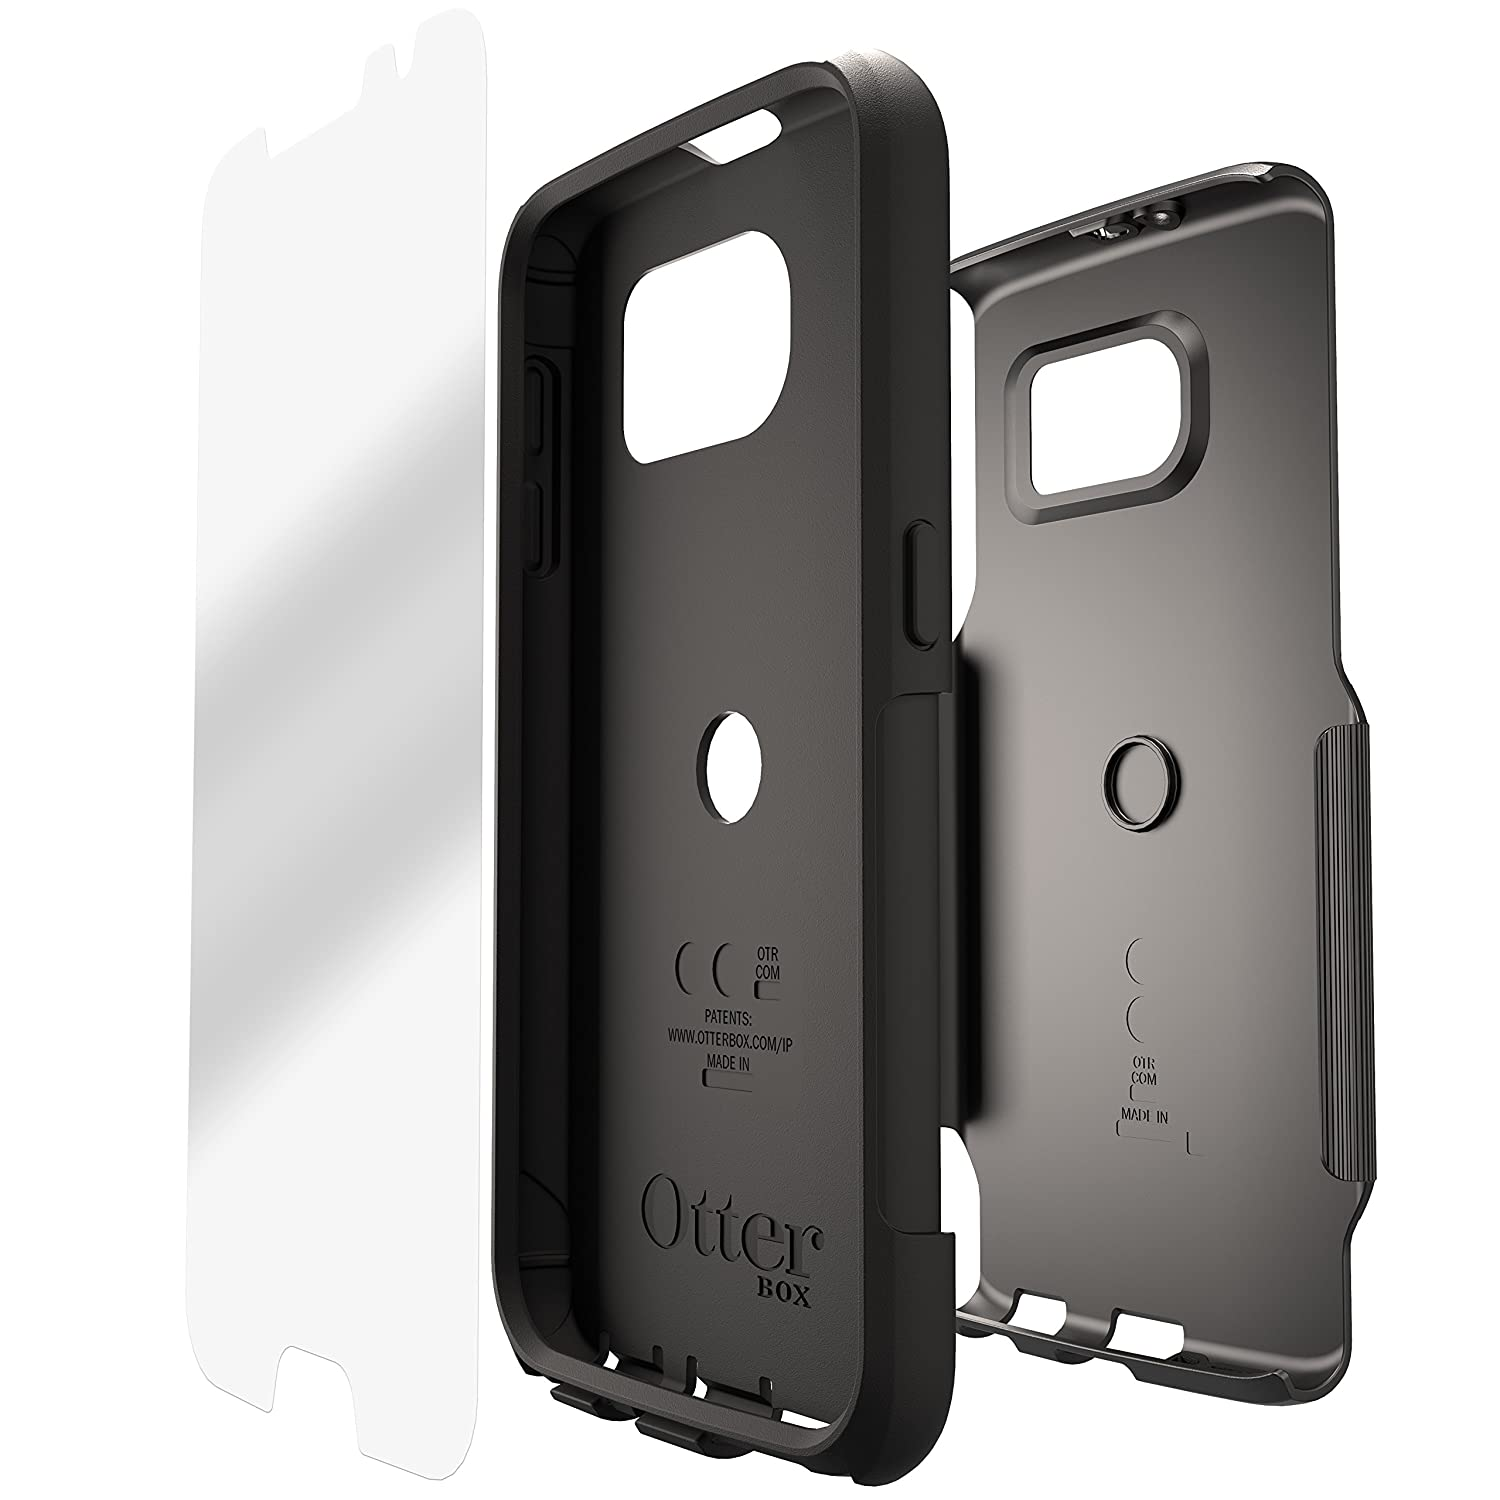 Amazon.com: OtterBox Commuter - Funda para Samsung Galaxy S6 ...